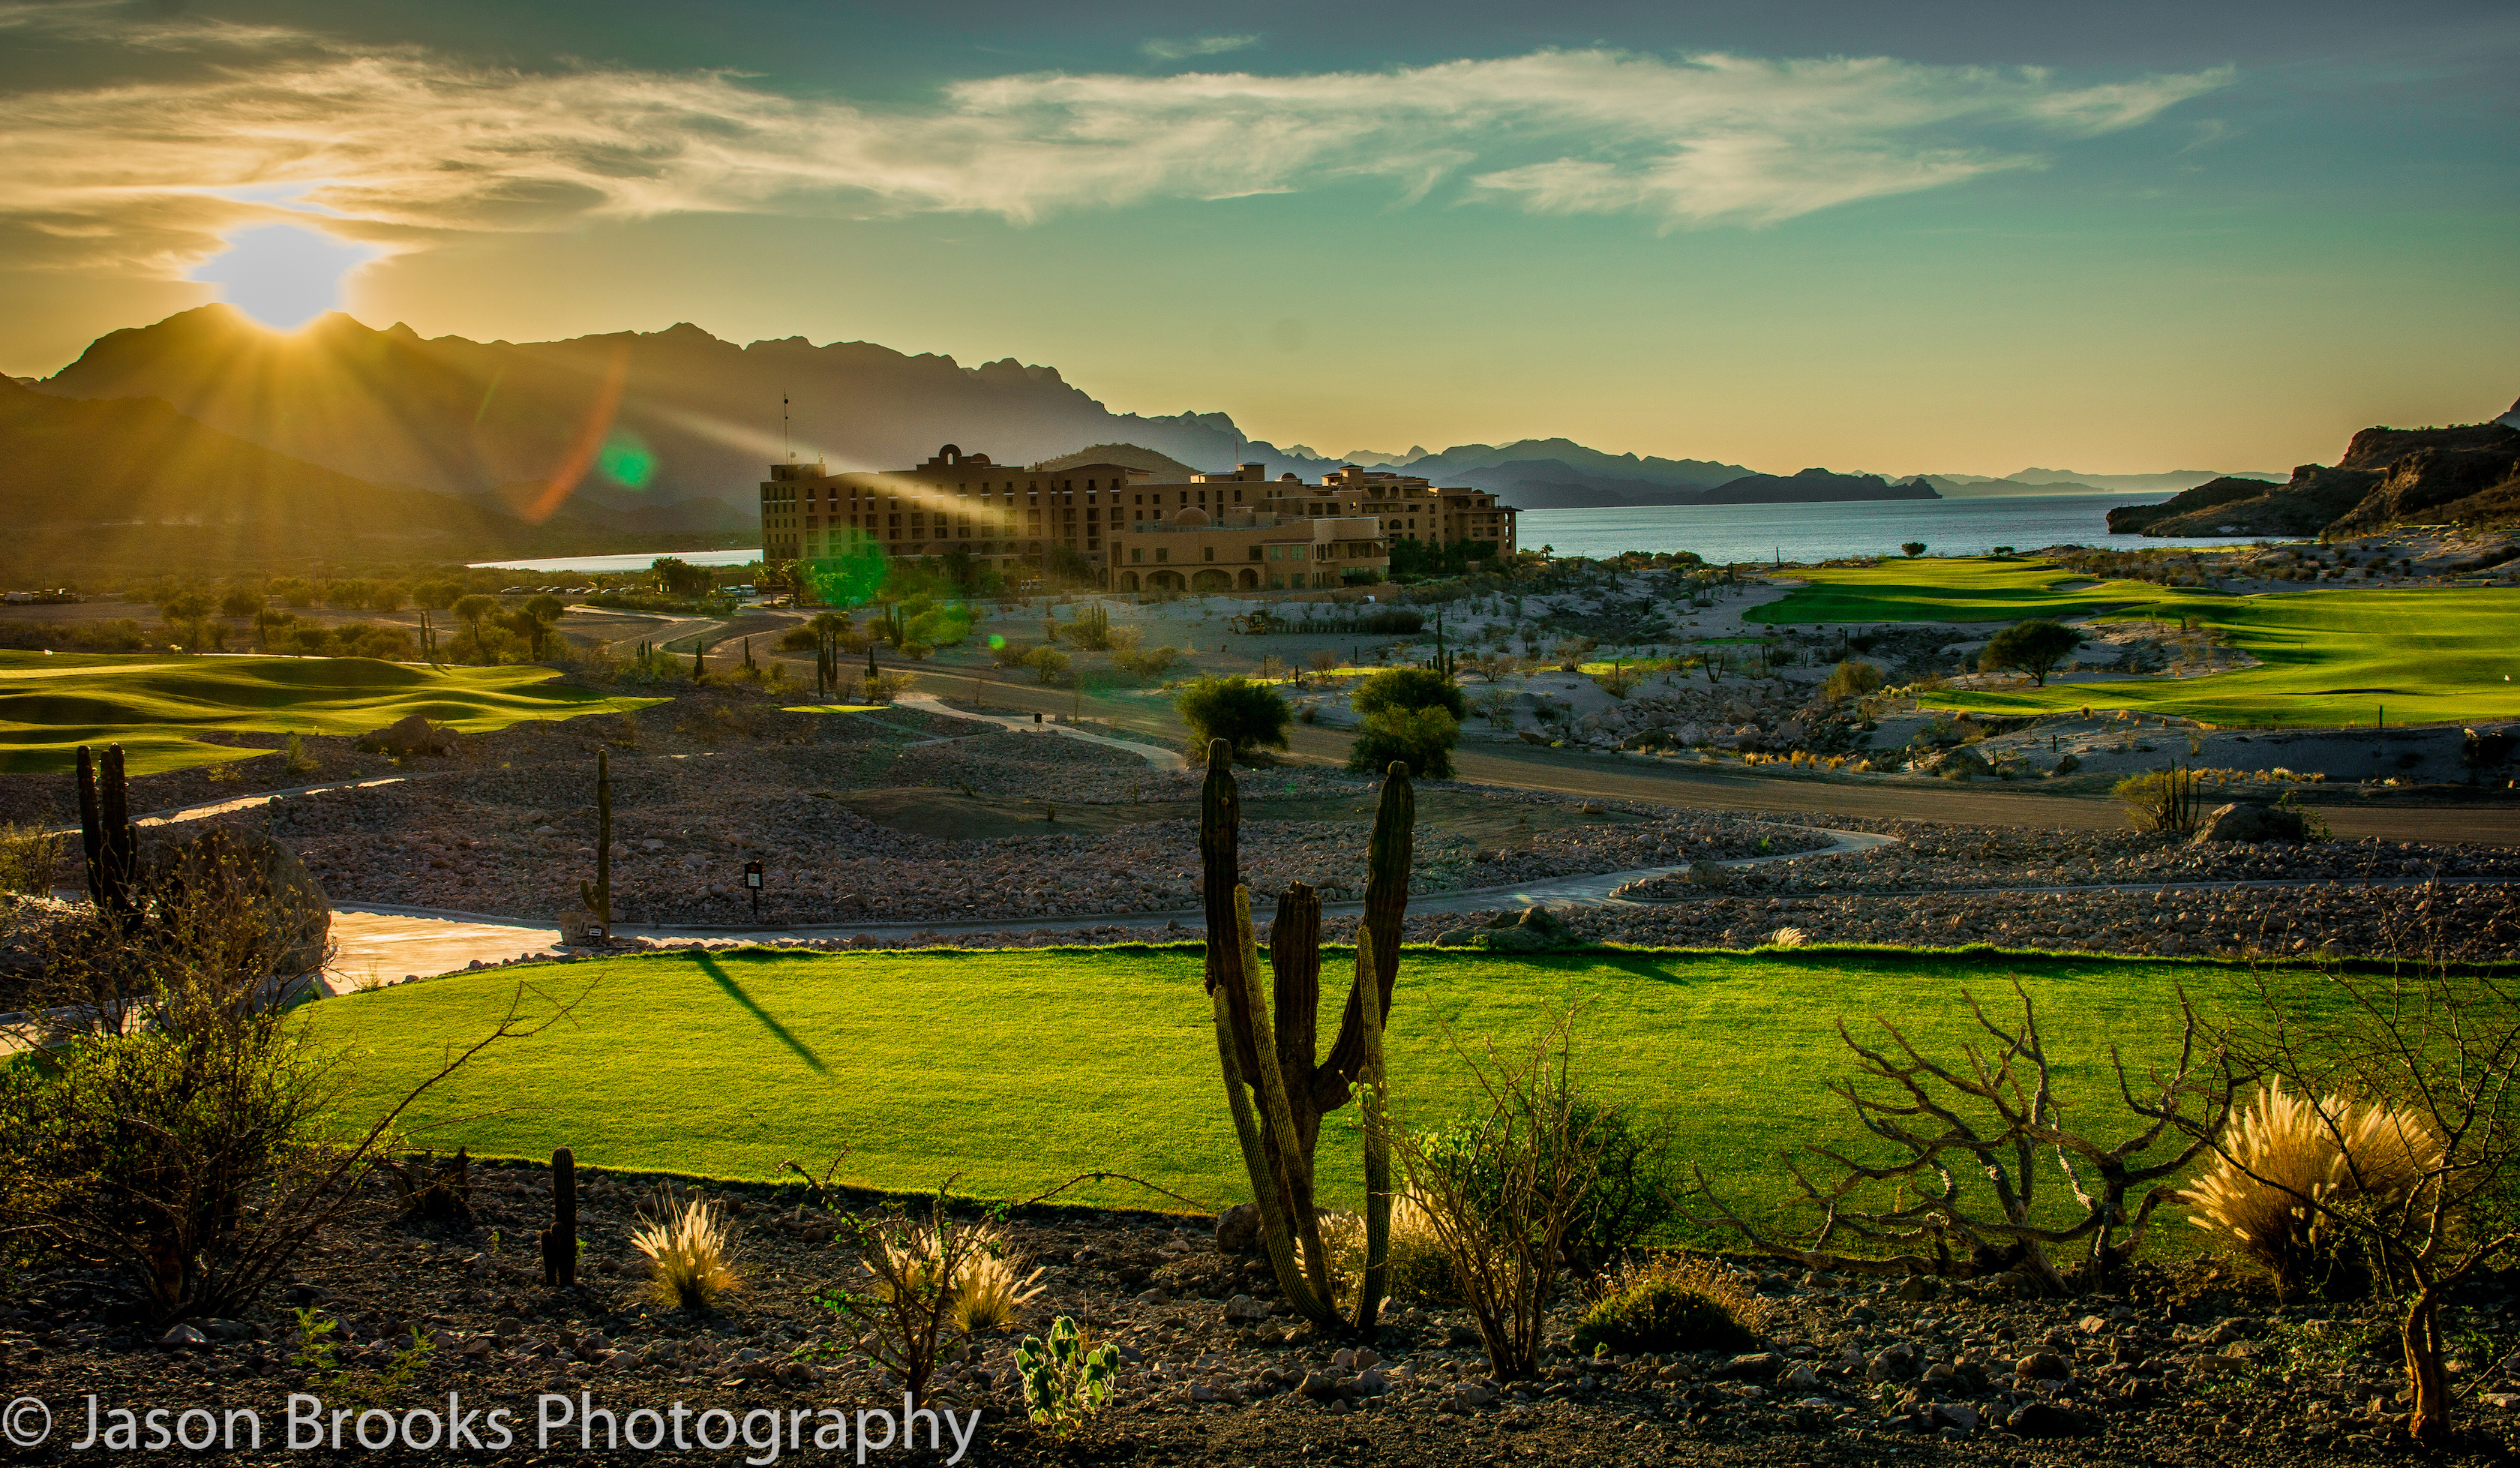 Villa del Palmar resort is a family friendly world class resort on the Baja Peninsula-Jason Brooks